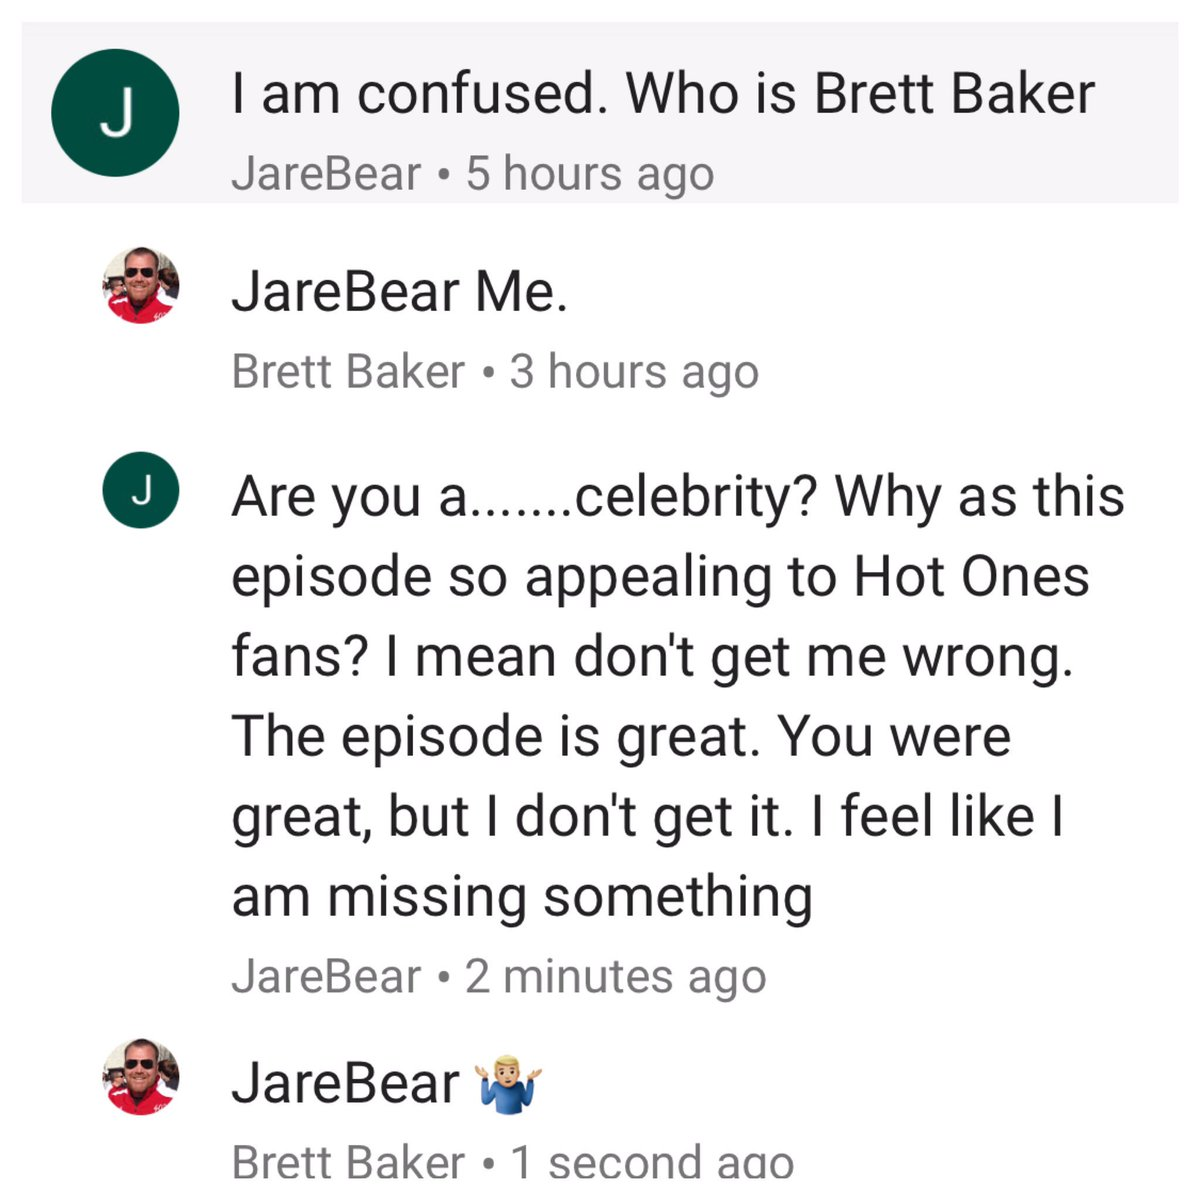 This is my favorite @youtube exchange so far. #HotOnes https://t.co/aw...